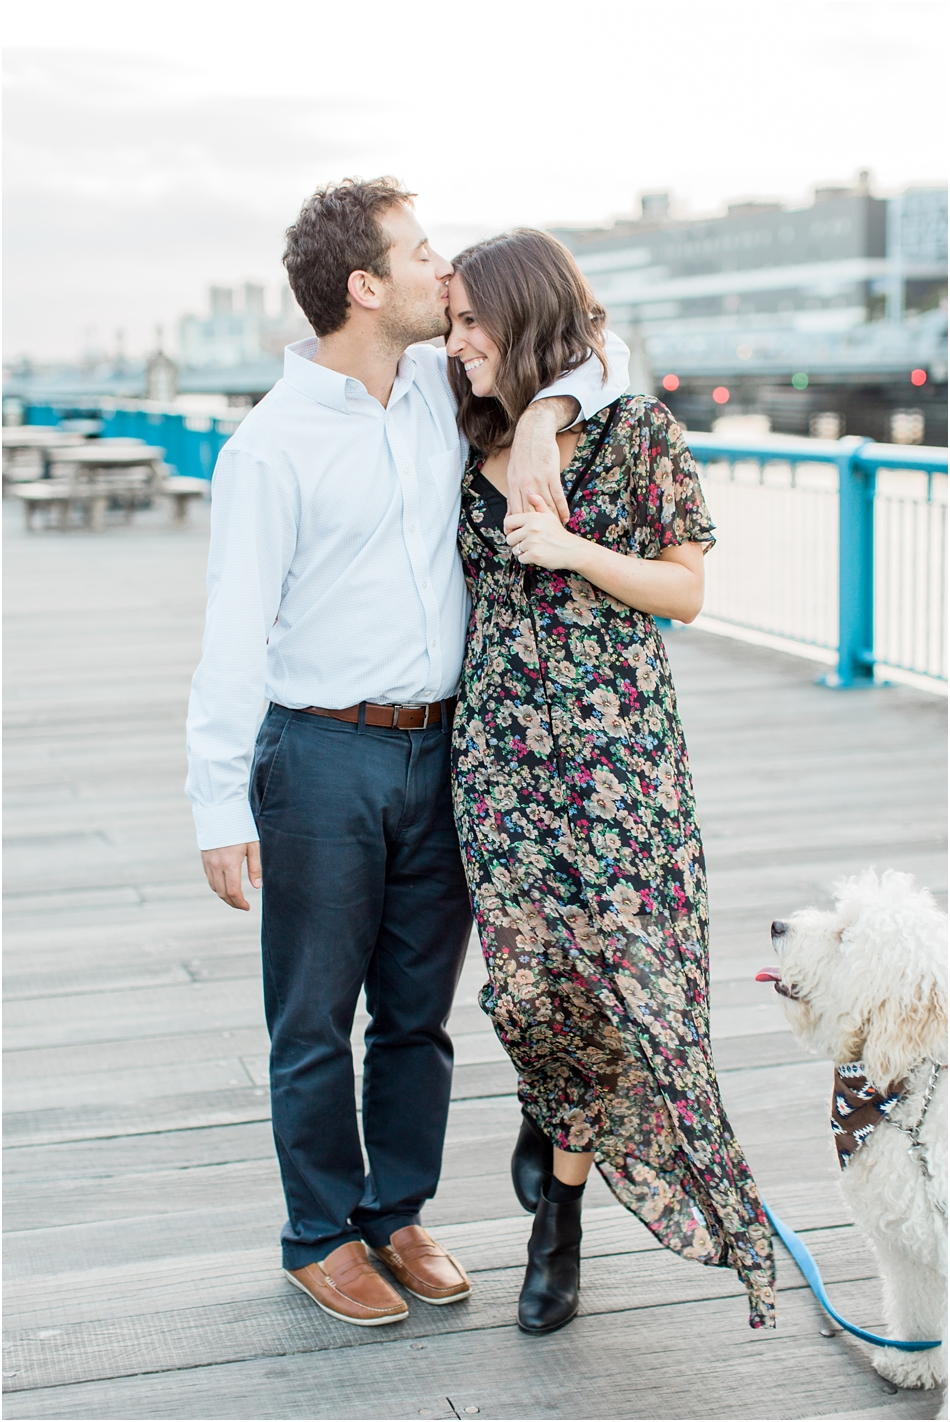 fort_point_seaport_engagement_jenna_mike_cape_cod_boston_new_england_wedding_photographer_Meredith_Jane_Photography_photo_2690.jpg